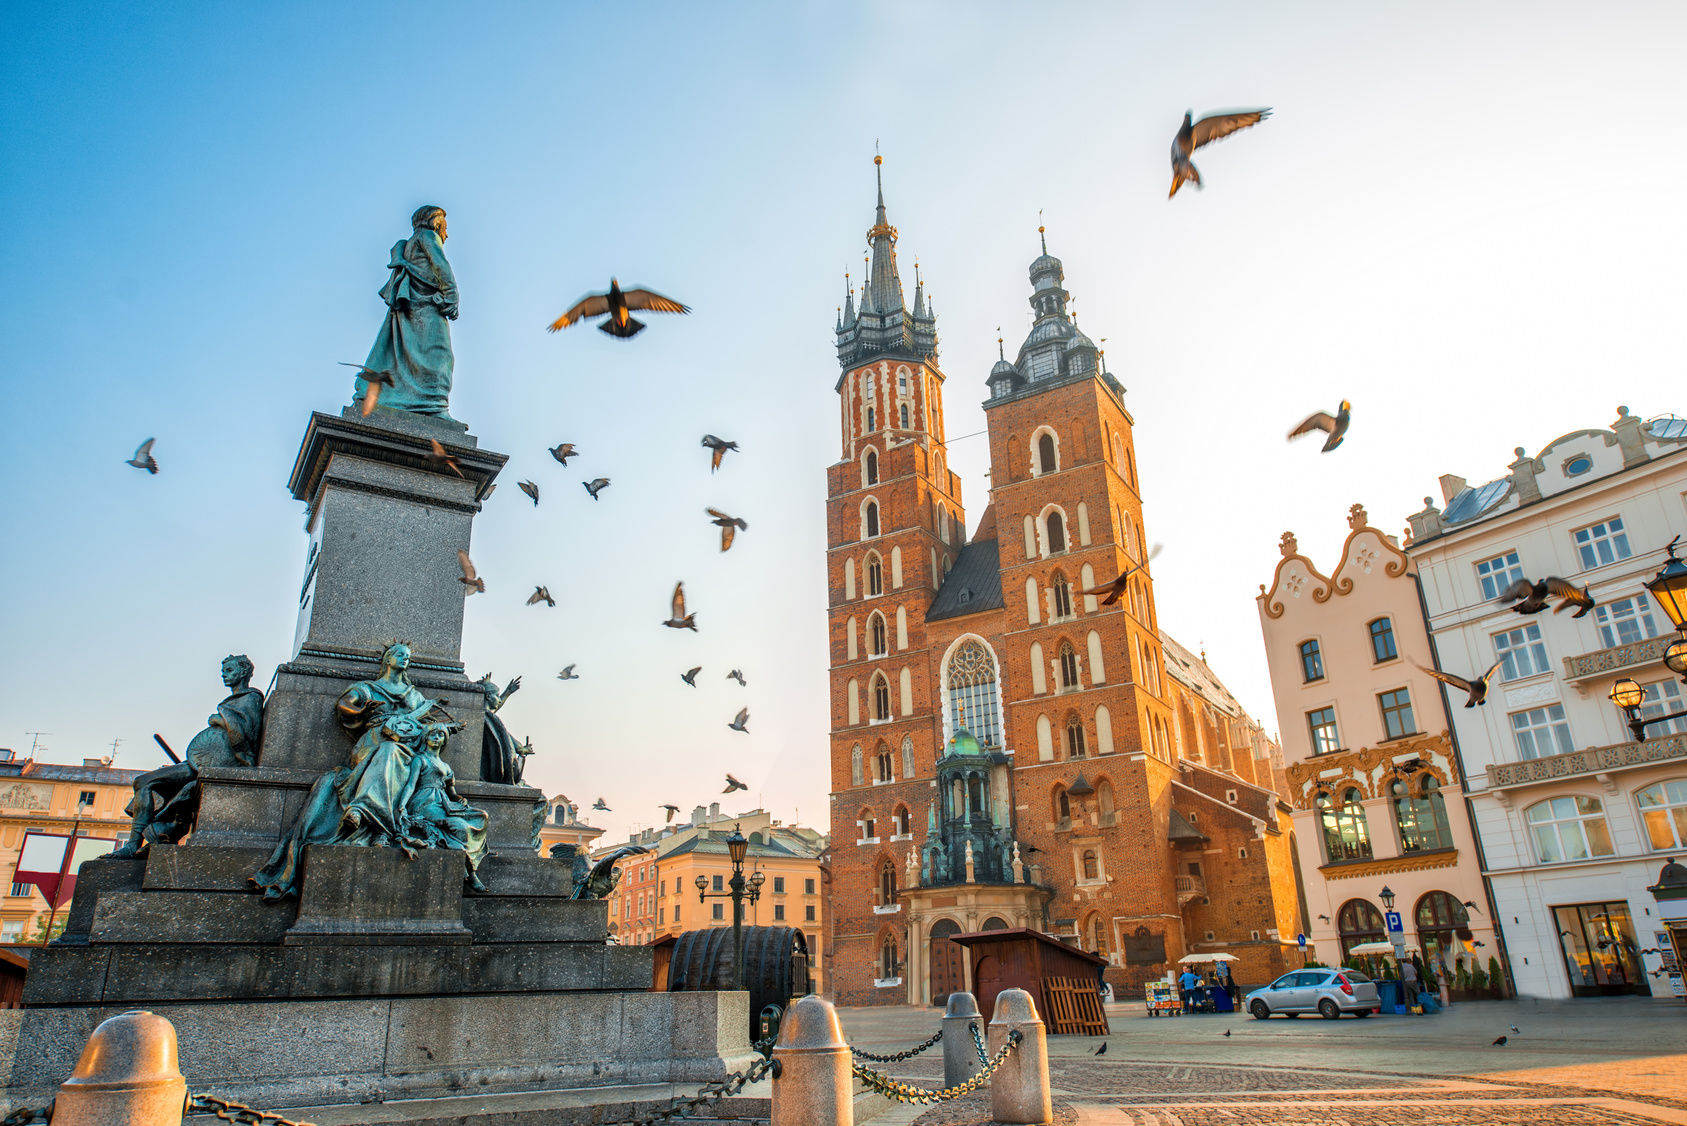 Old city center view with Adam Mickiewicz monument, St. Mary's Basilica and birds flying in Krakow on the morning